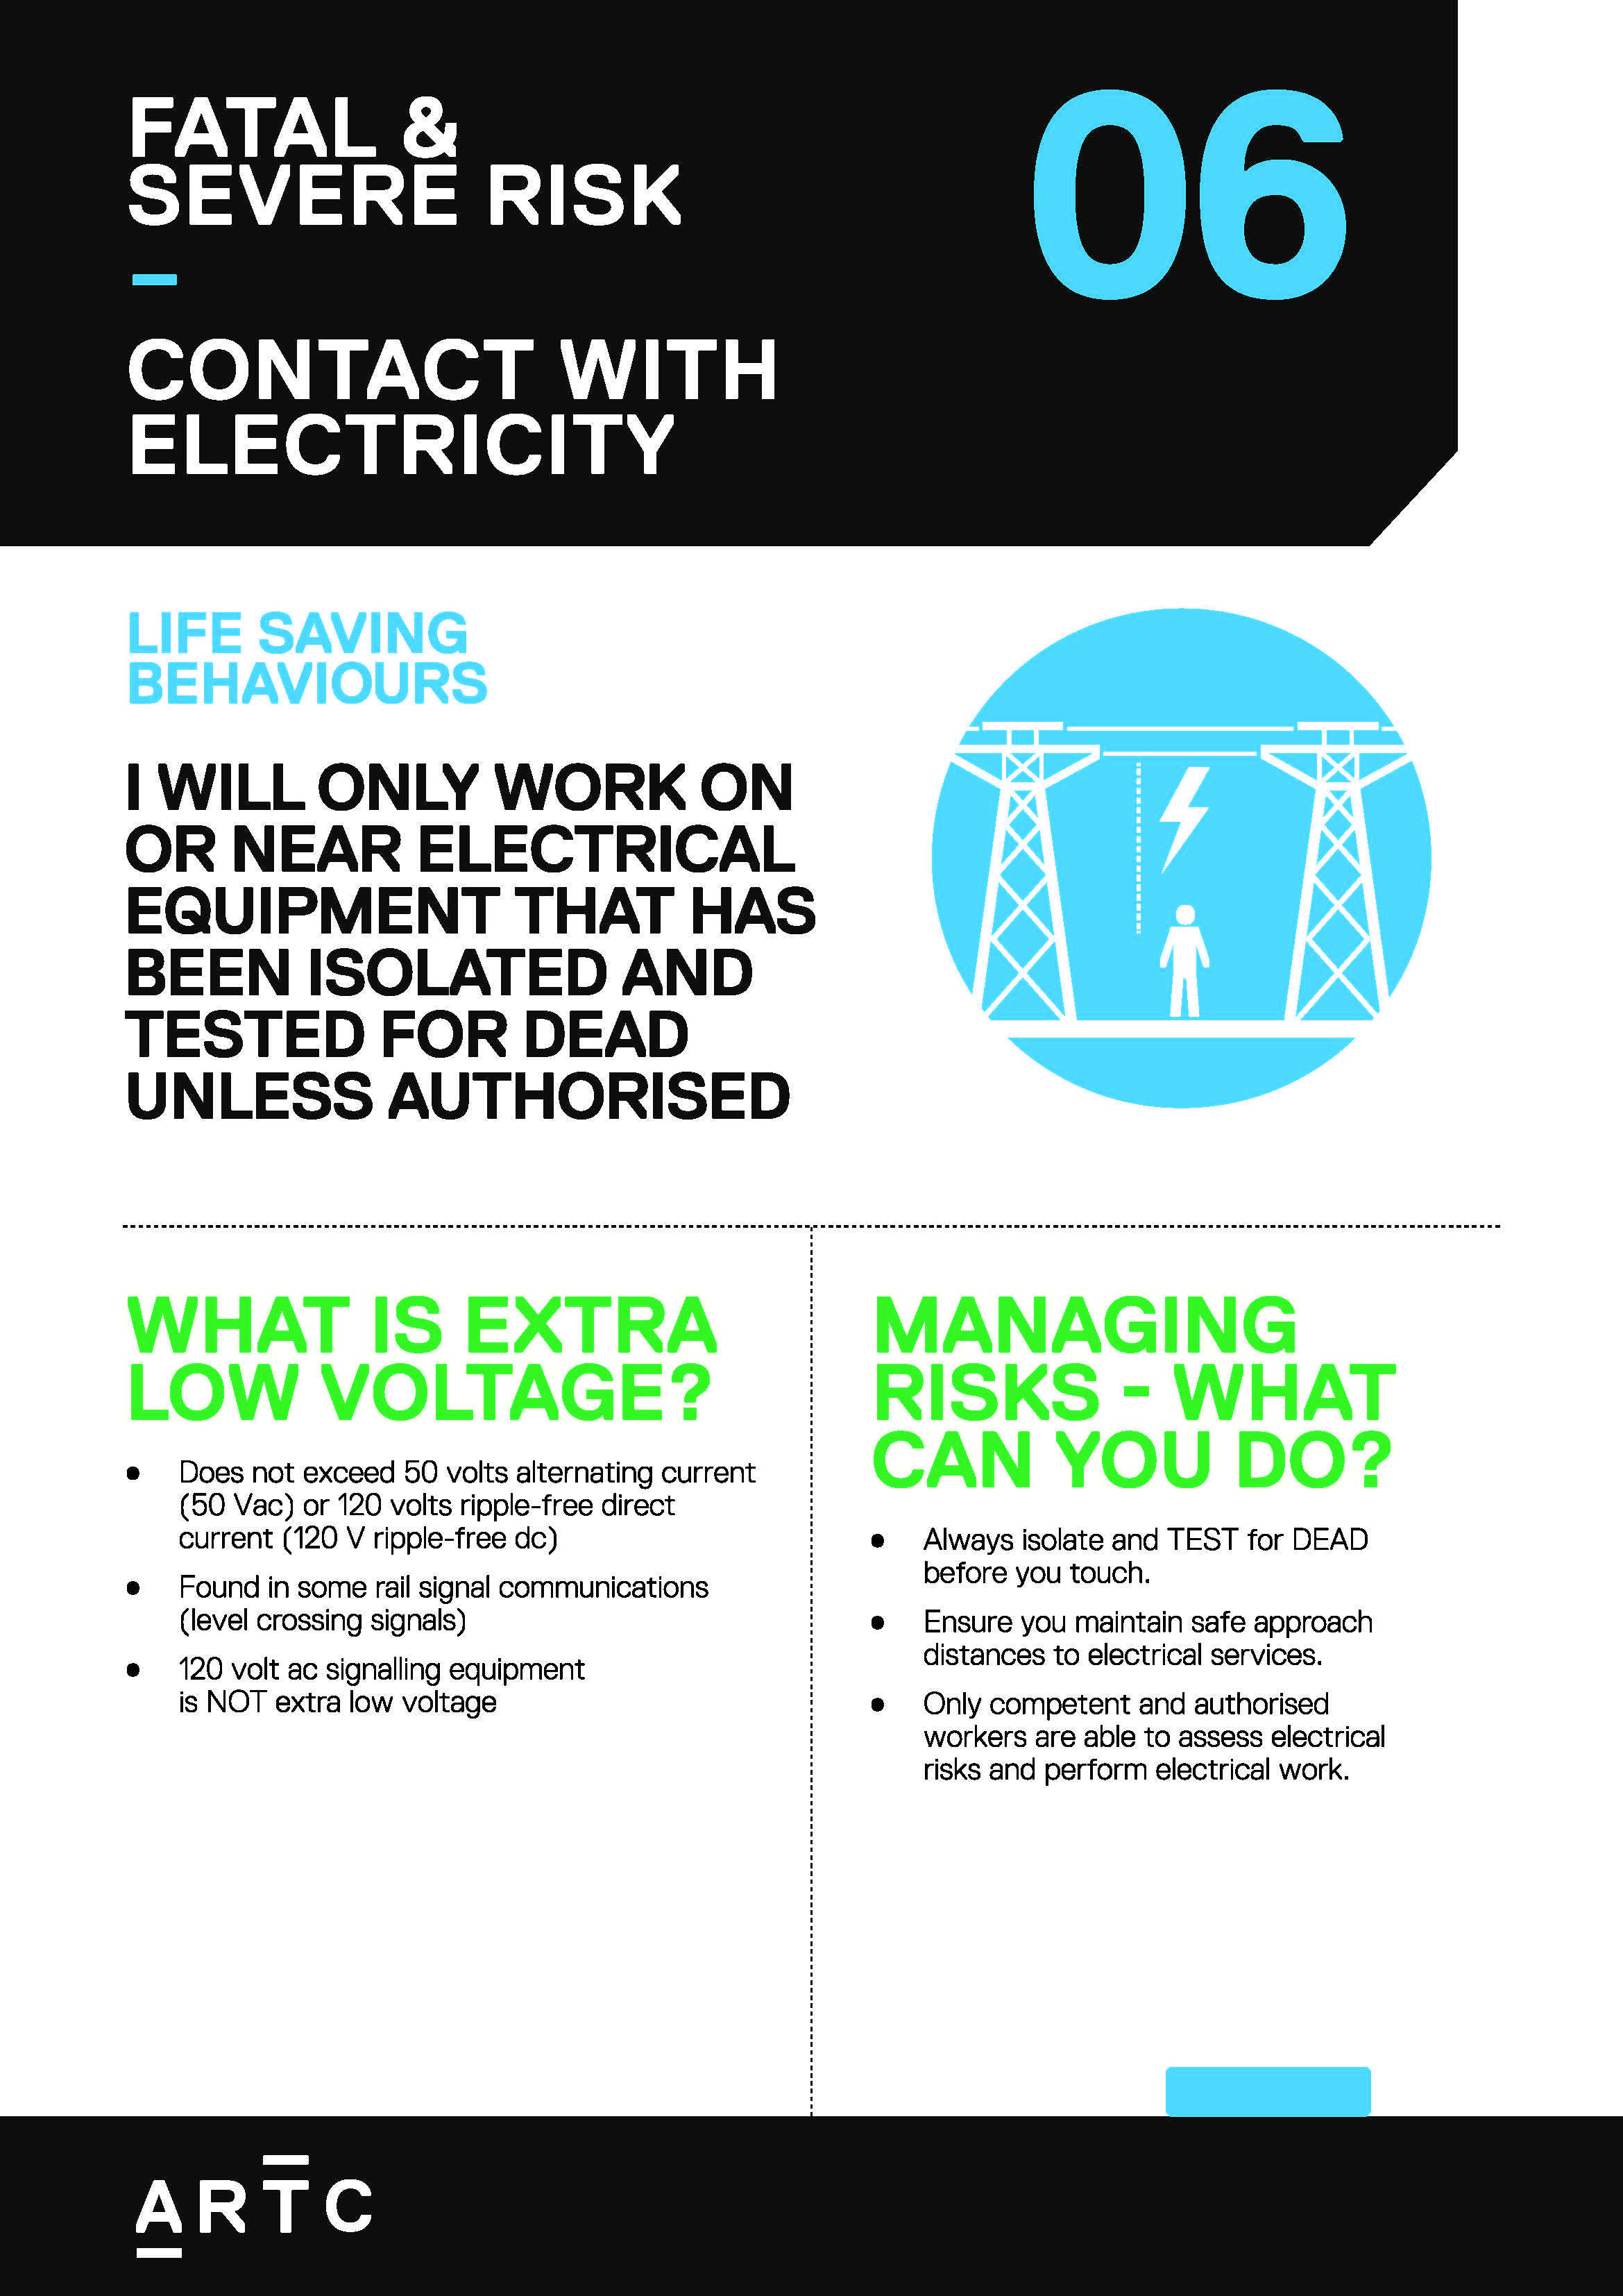 Contact with Electricity – ARTC